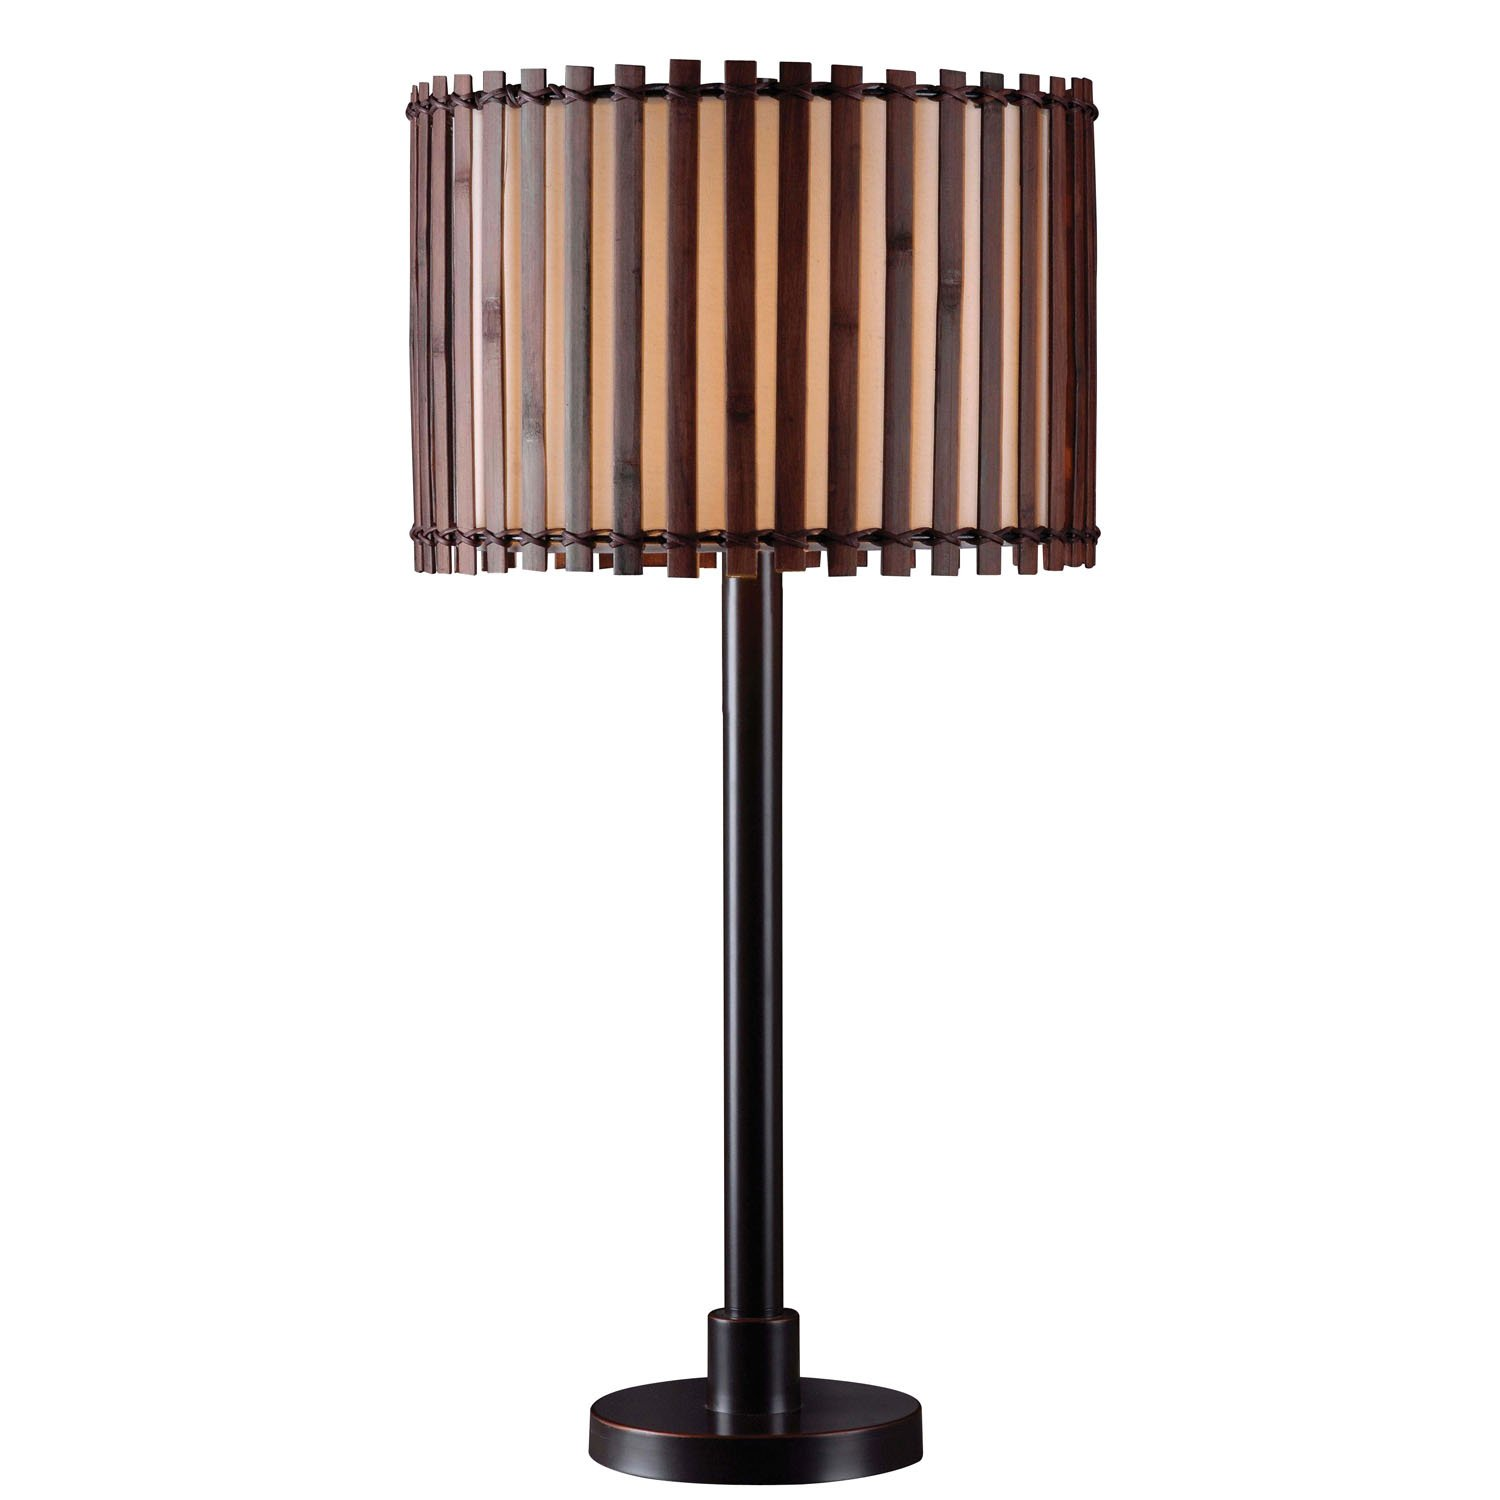 Kenroy Home 32279BRZ Bora Outdoor Table Lamp, Bronze Finish by Kenroy Home